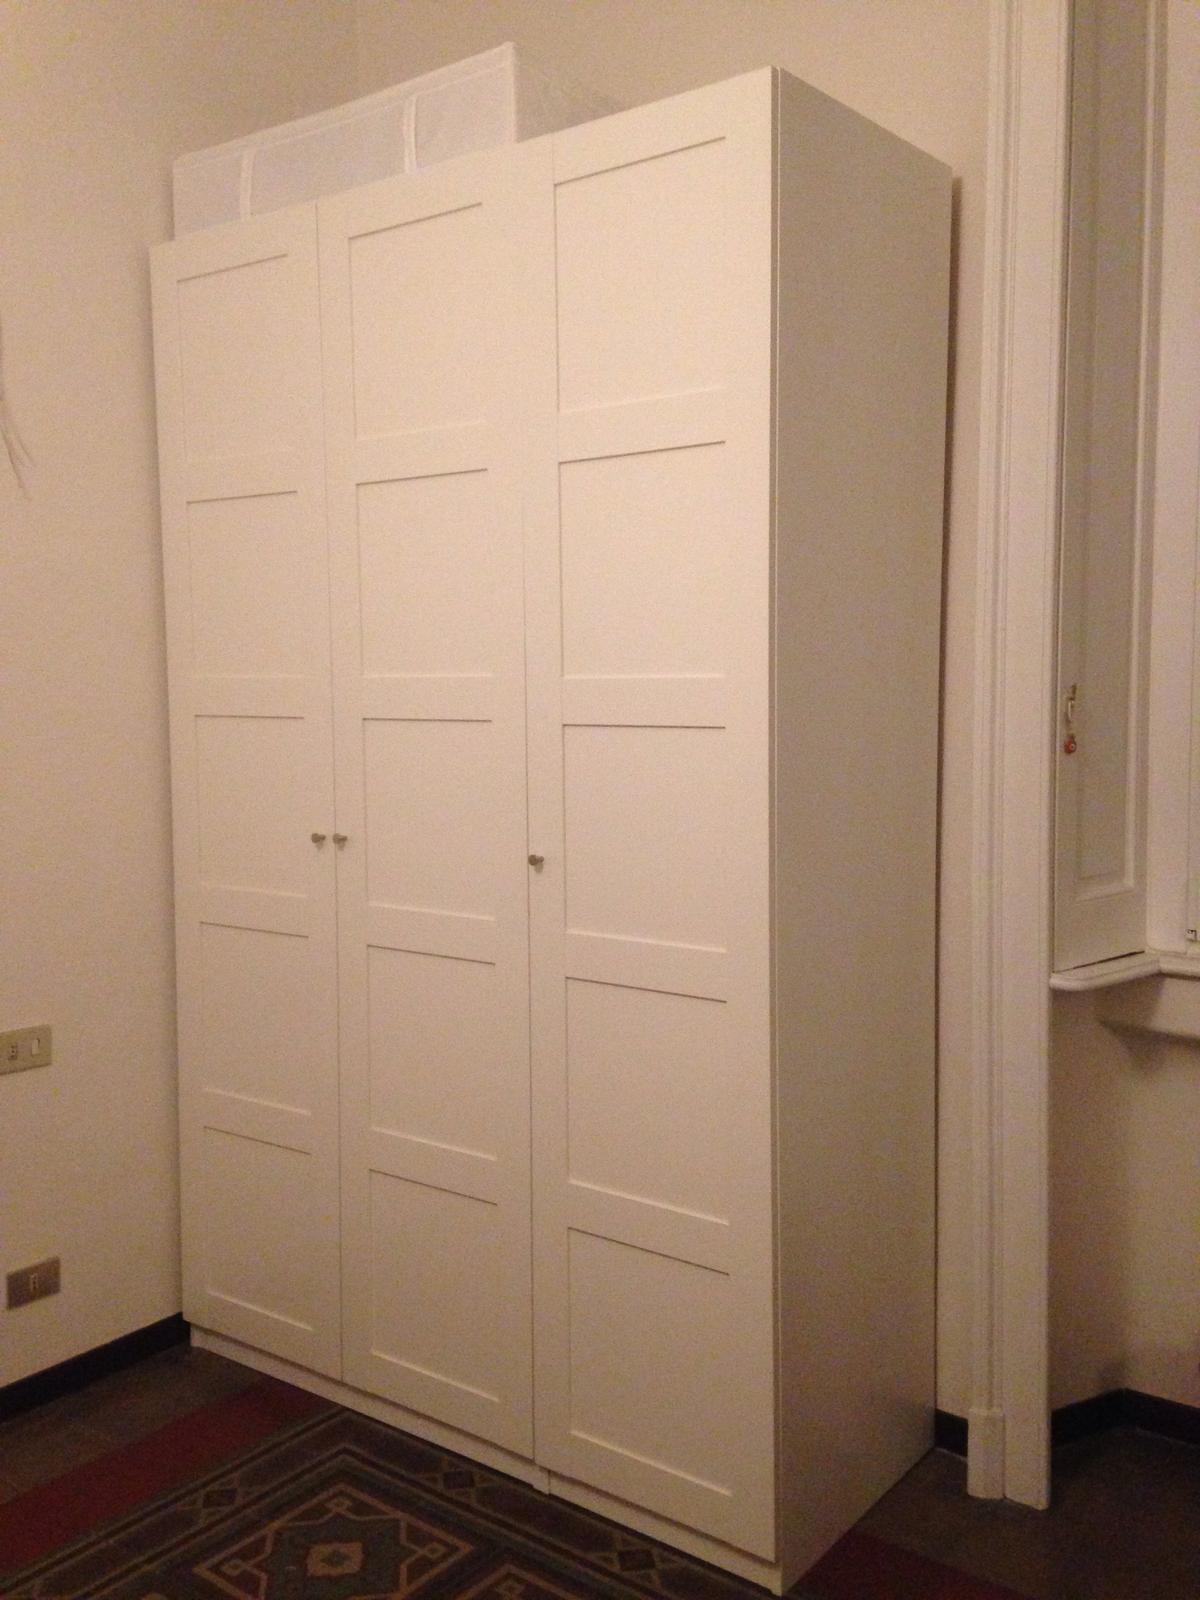 Armadio 5 Ante Ikea.Armadio Pax Bergsbo Ikea 3 Ante Bianco In 20133 Milano For 250 00 For Sale Shpock